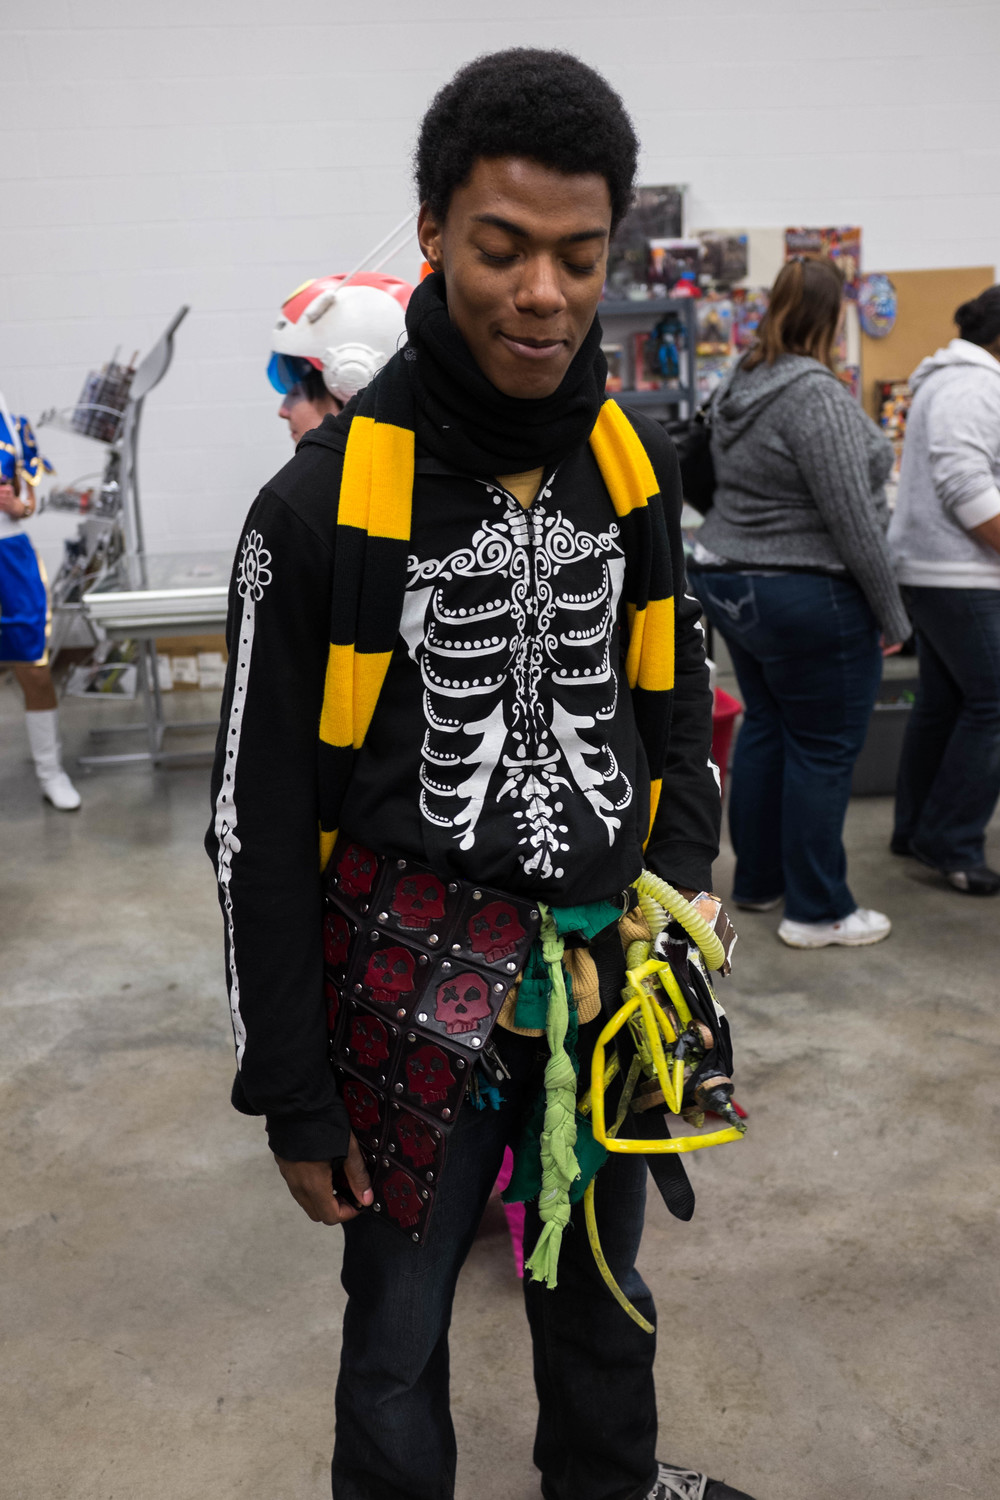 I saw this guy and had to take a pic of him. I ask him about his costume and he said he put it together and he even made the skull half kilt he was wearing. I had to get a close up picture of it below.